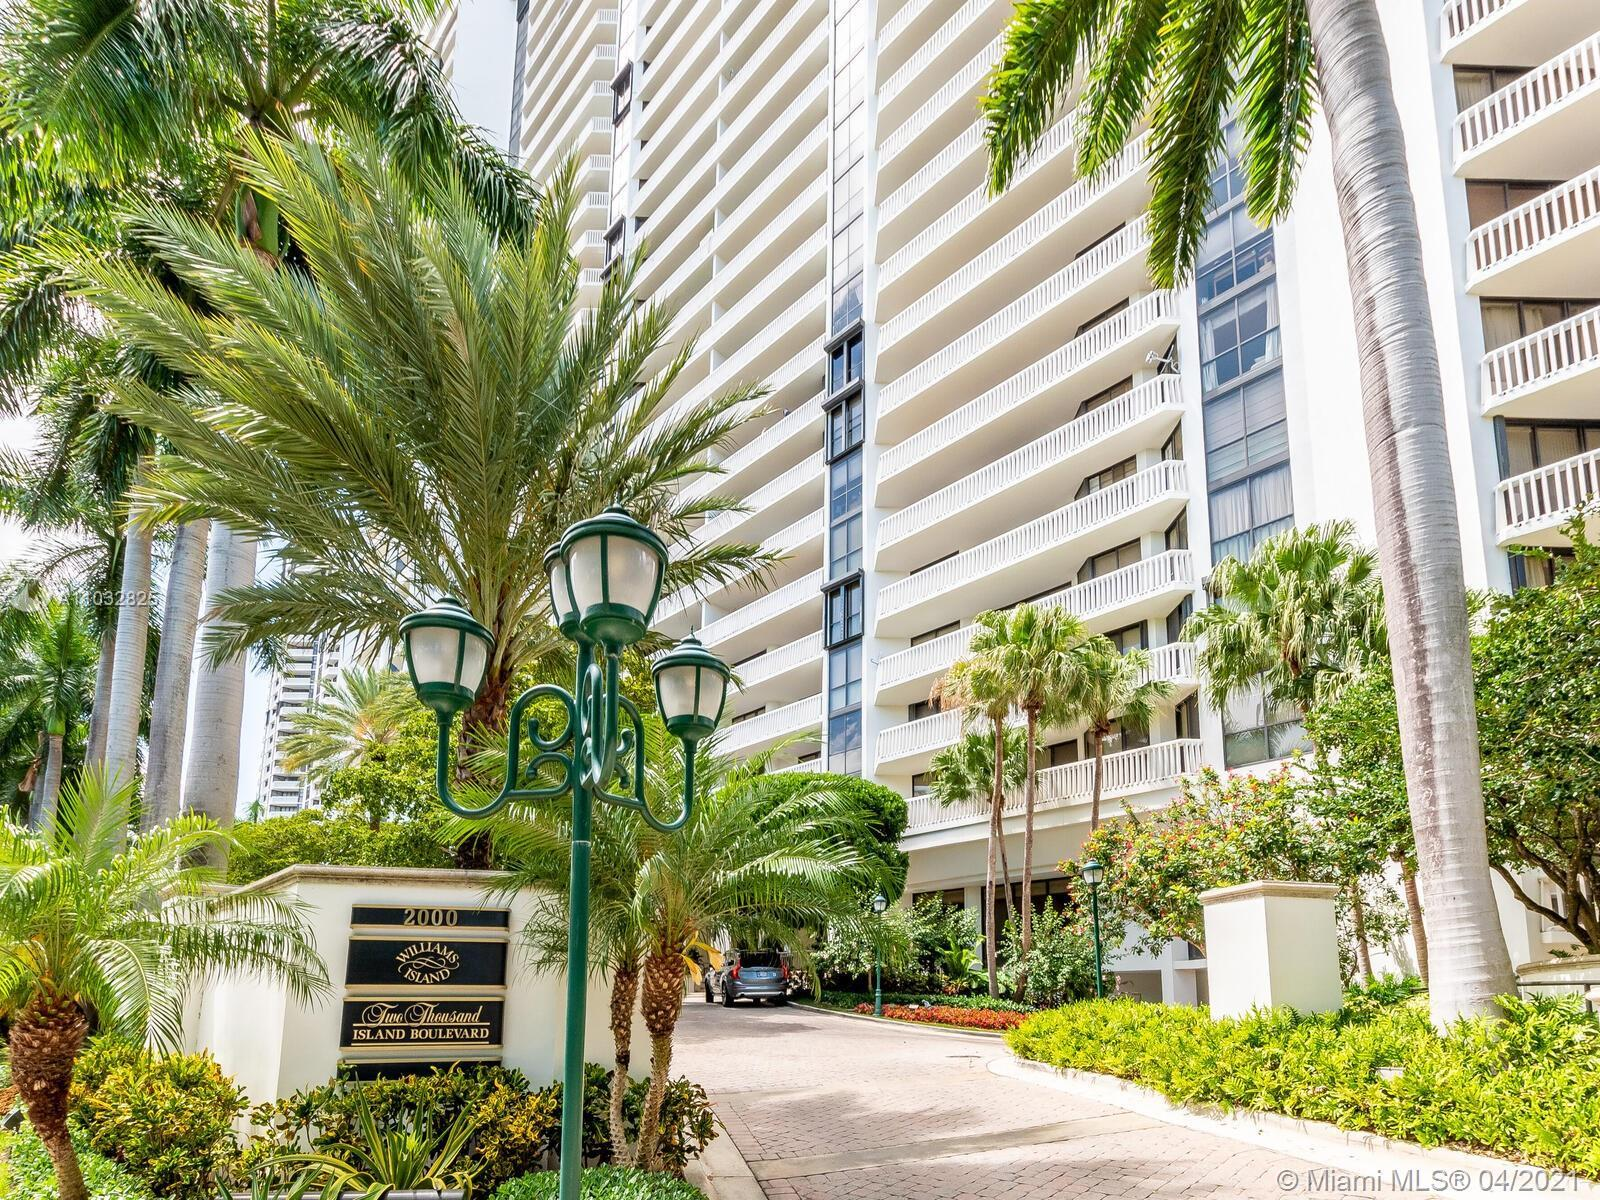 PRESTIGIOUS WILLIAM ISLAND, LARGE 2 BEDROOM / 2 BATHROOMS 1,750 SQFT WITH SPLIT FLOOR PLAN. HUGE BAL